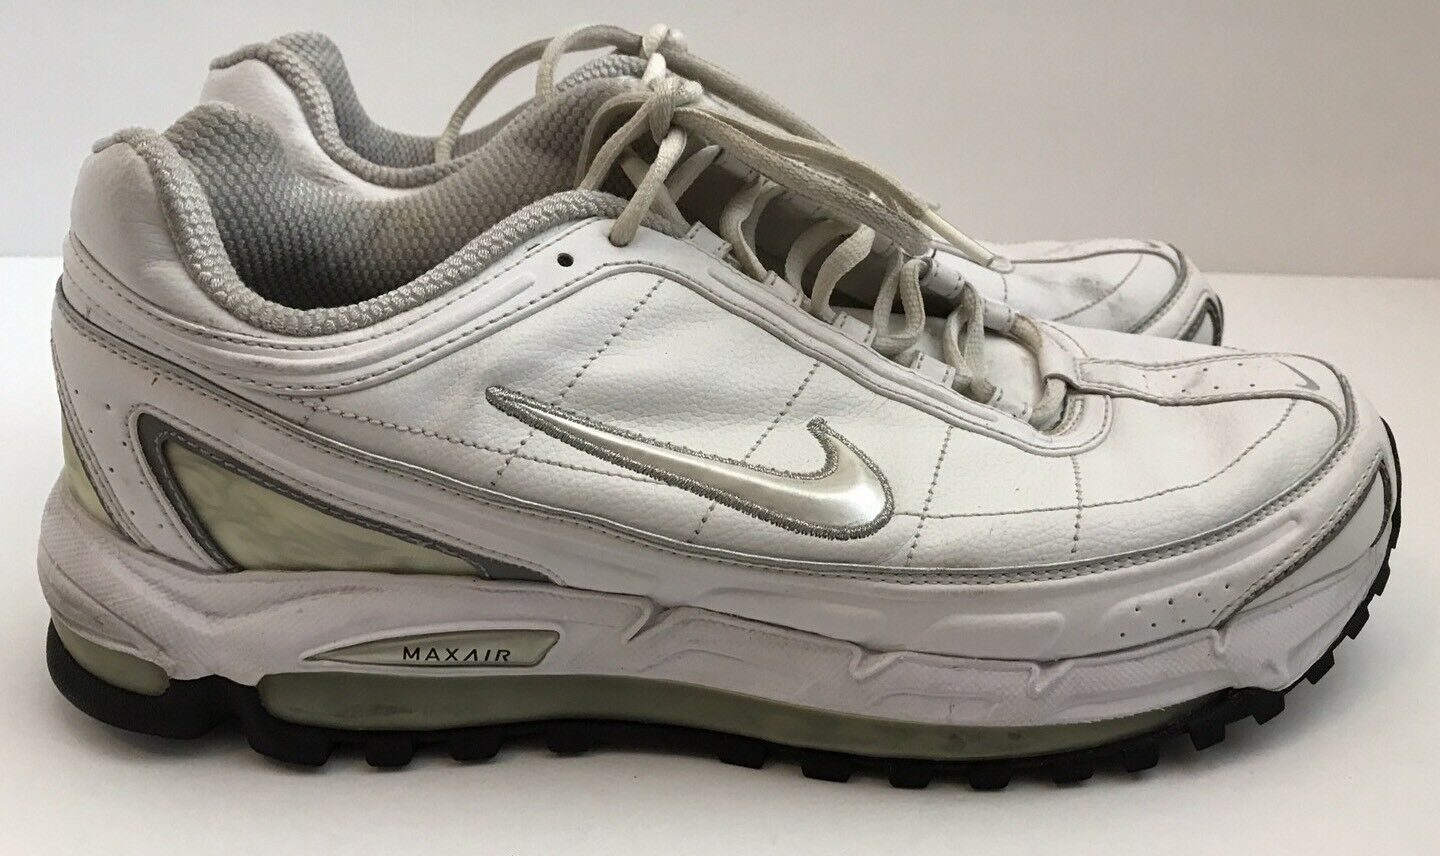 317d46f7b7530 Men s 2007 Nike Air Max Size 13 White 317442-111 Sneakers Sneakers Sneakers  Shoes e5b88c